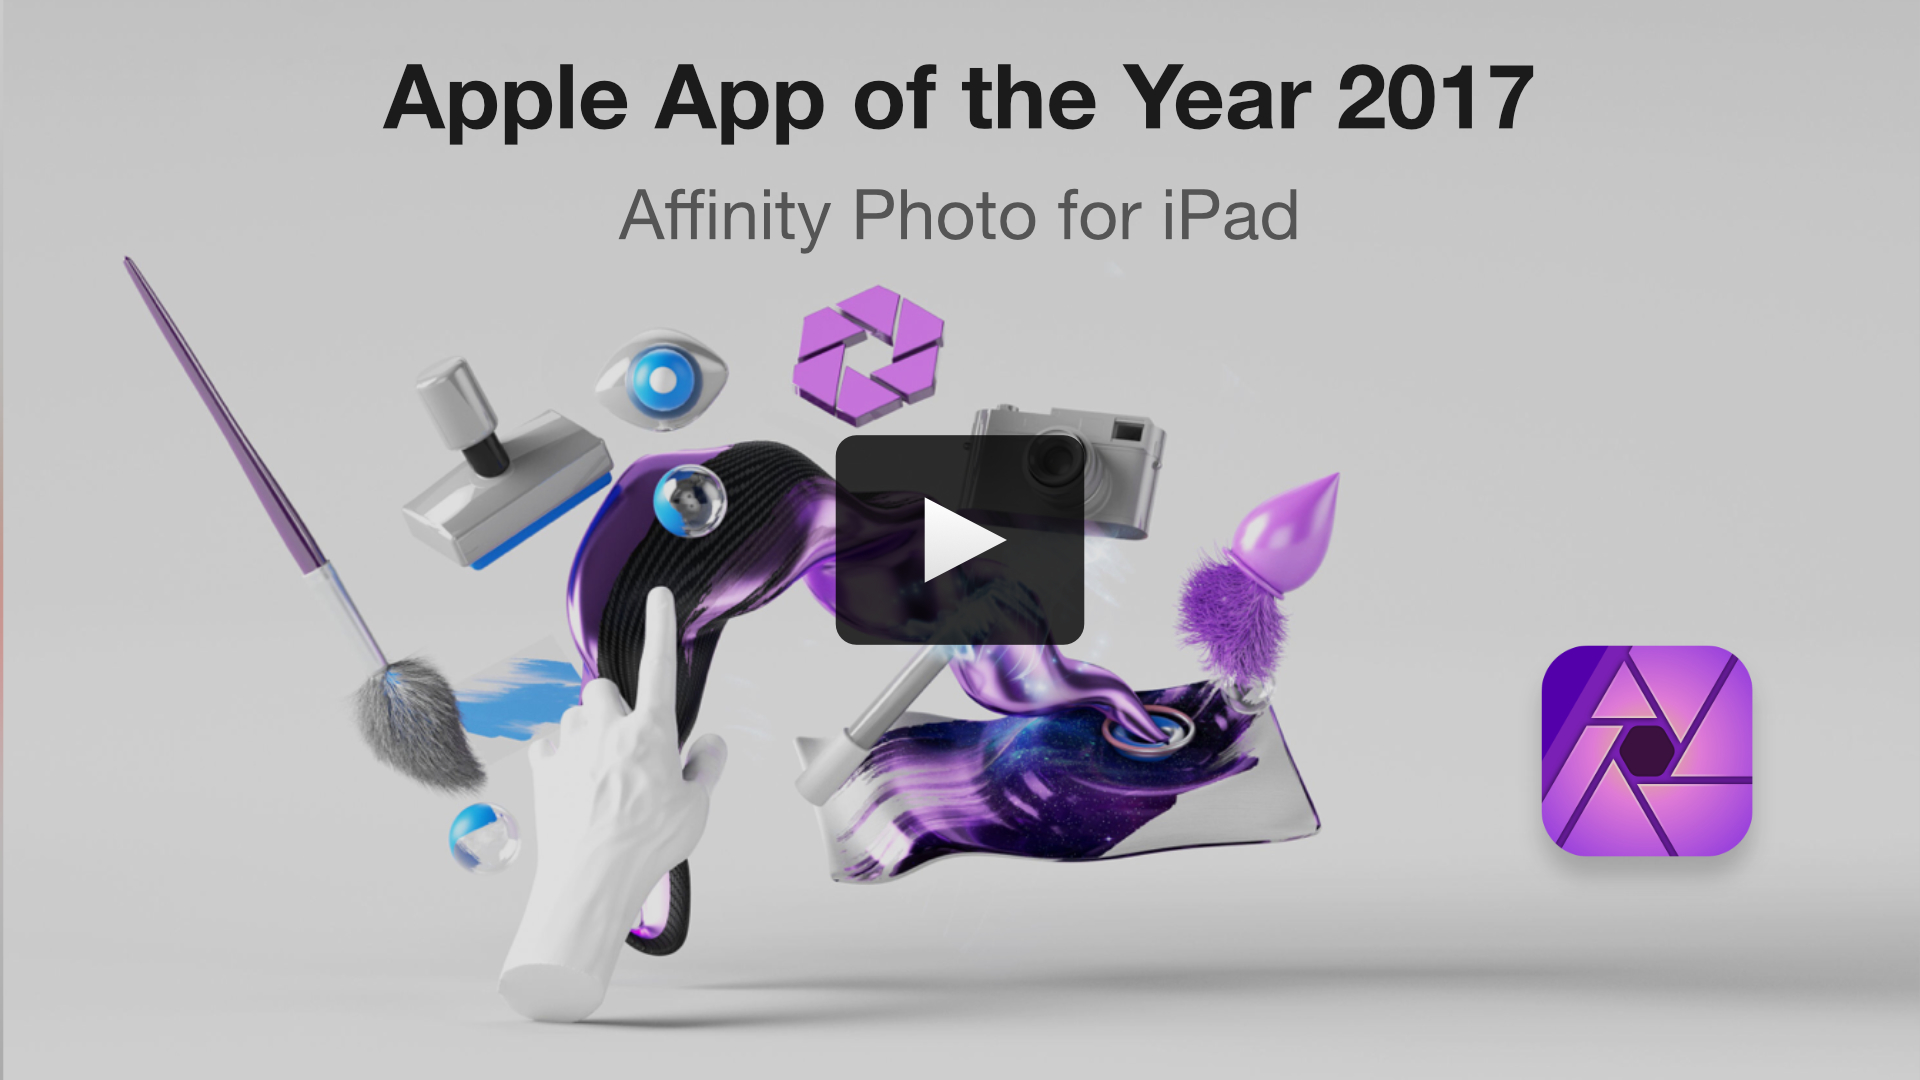 Affinity Photo for iPad video